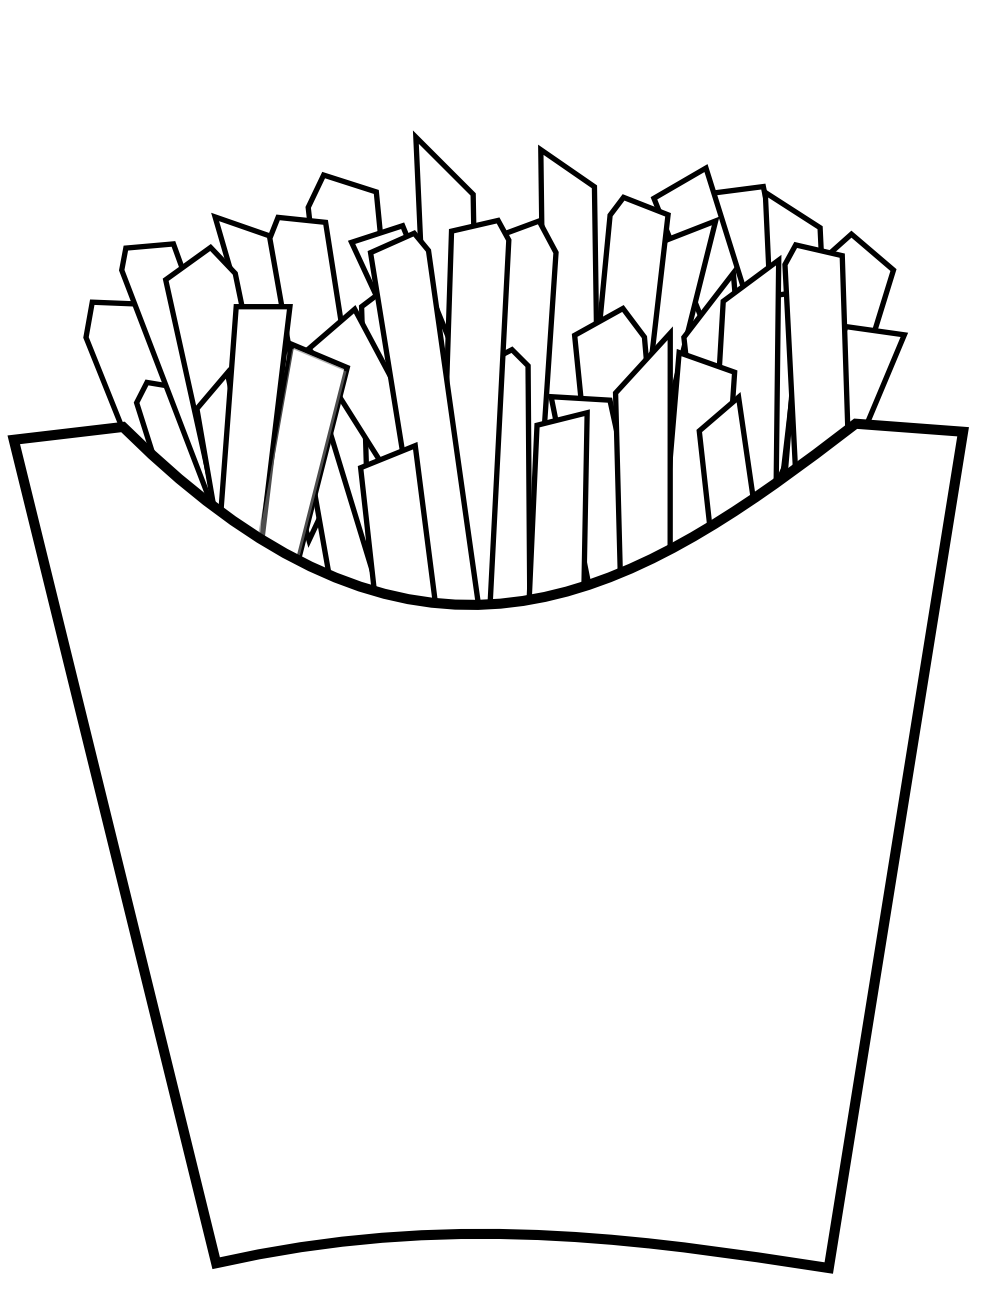 Chip drawing cool. Chips png free